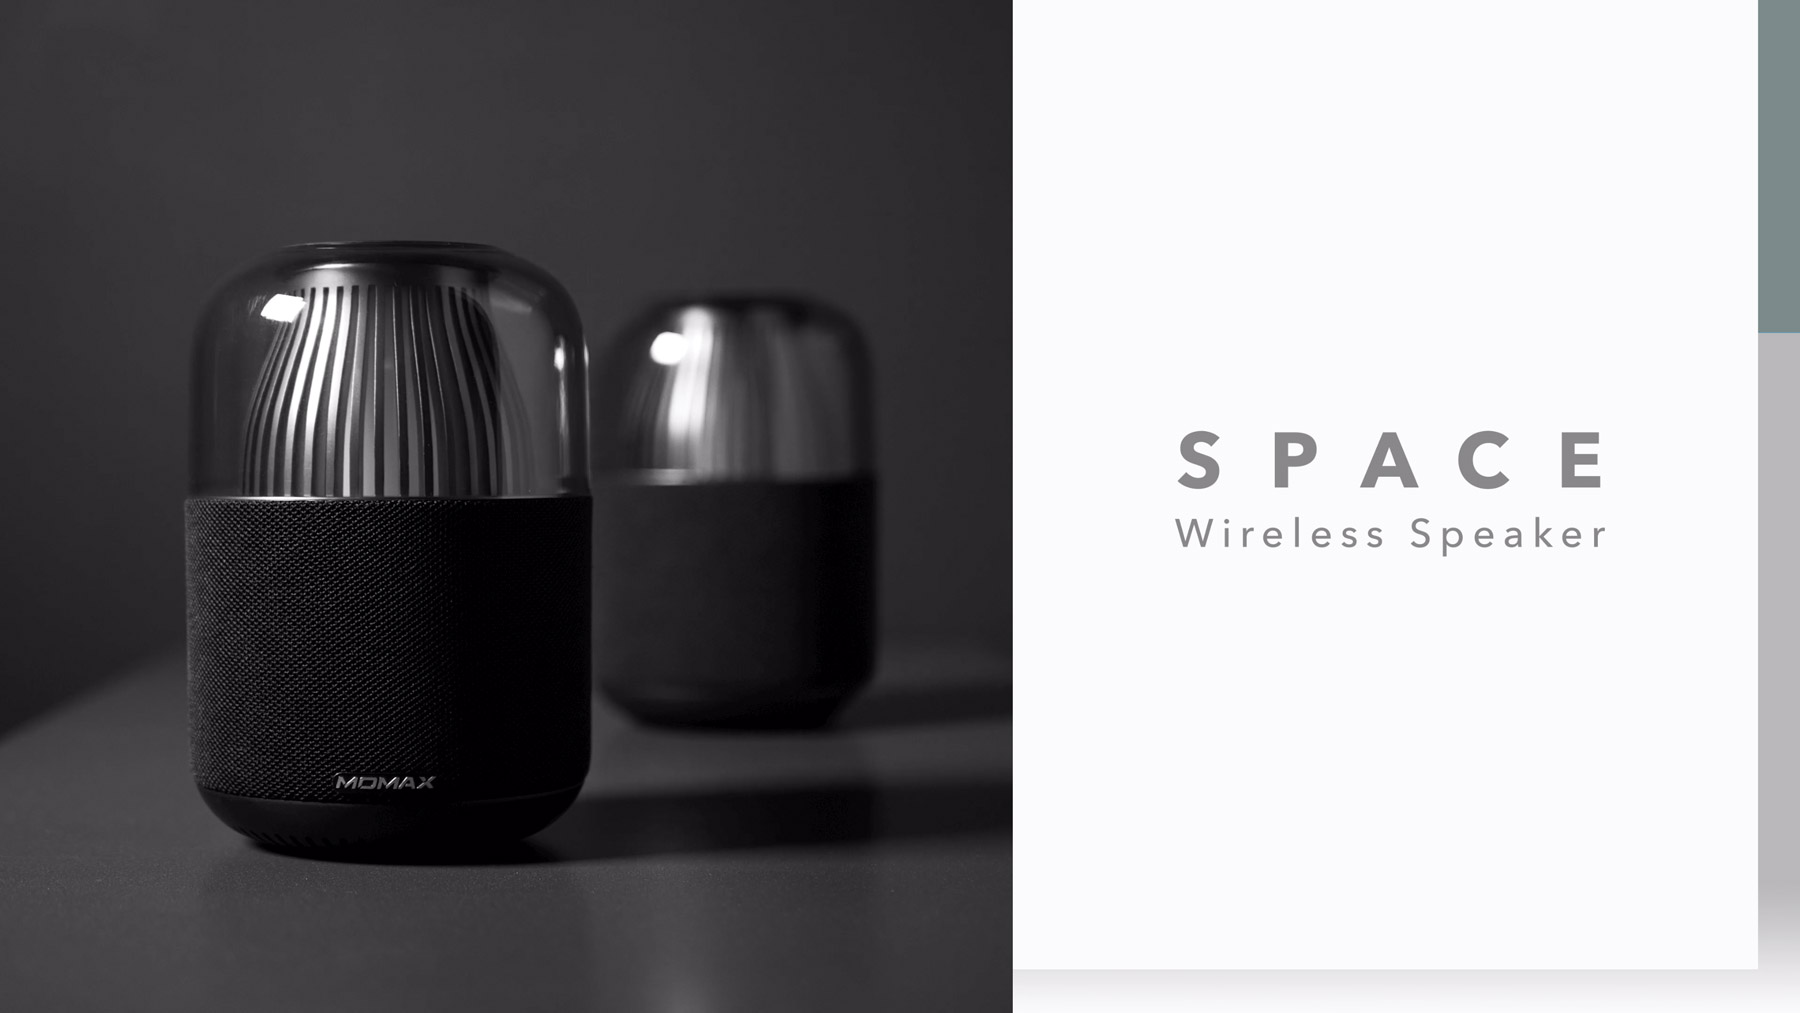 Momax Space Wireless Speaker